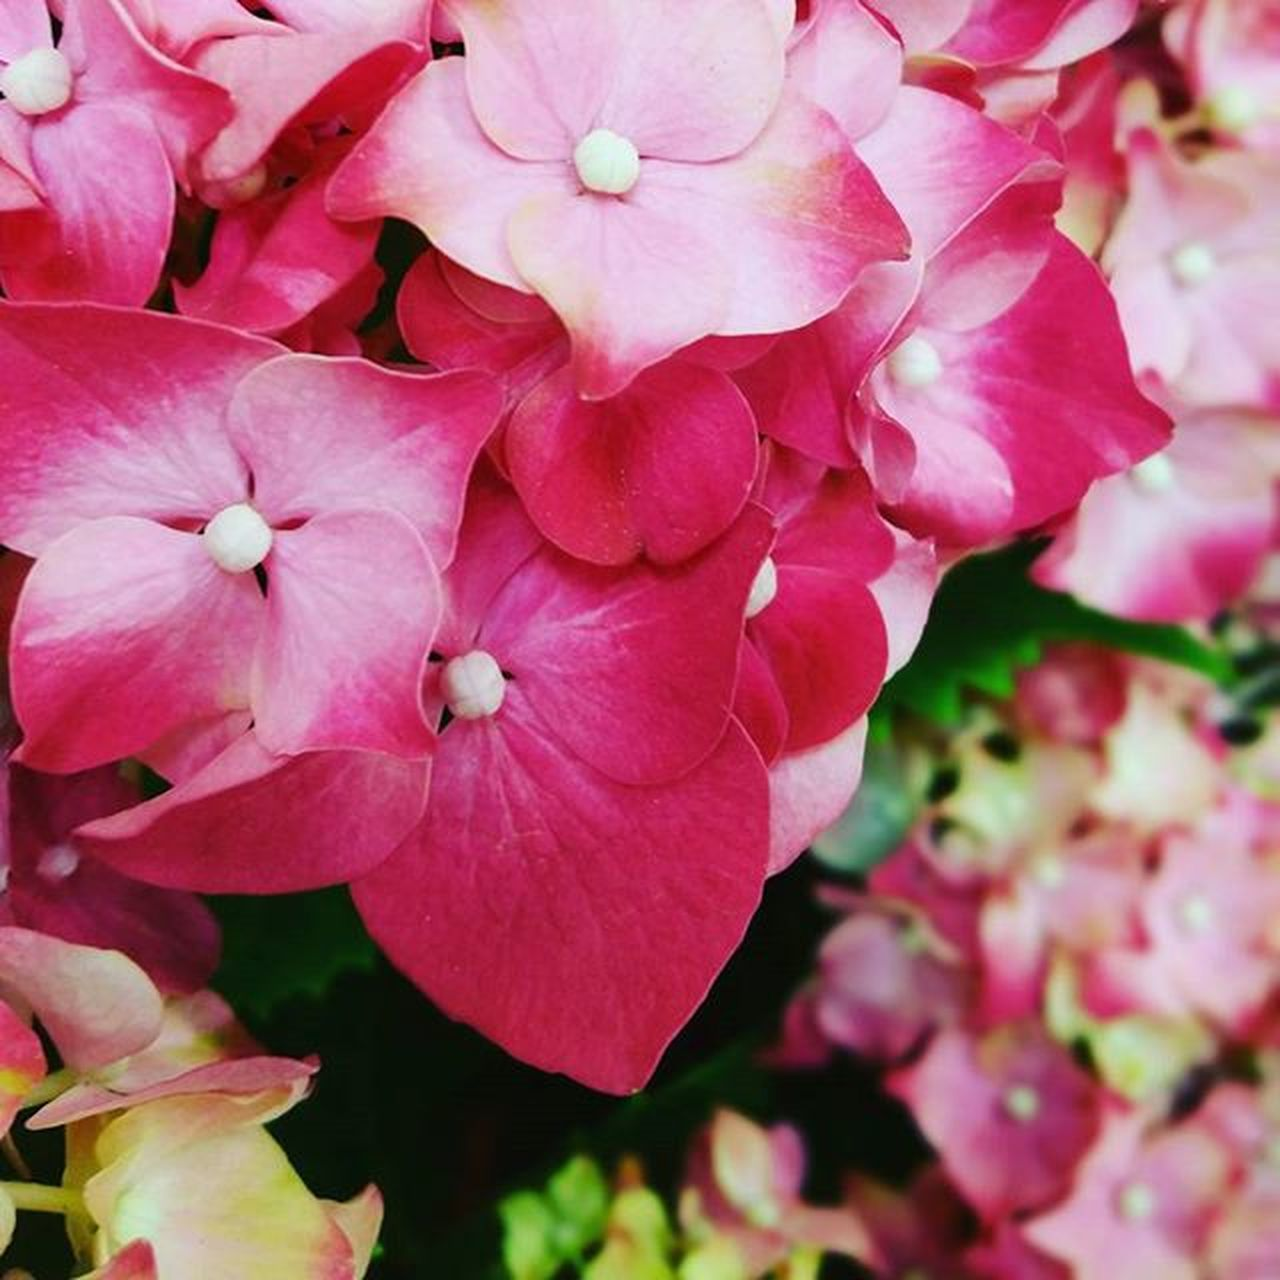 flower, petal, pink color, growth, flower head, beauty in nature, fragility, blooming, freshness, no people, close-up, nature, outdoors, plant, day, periwinkle